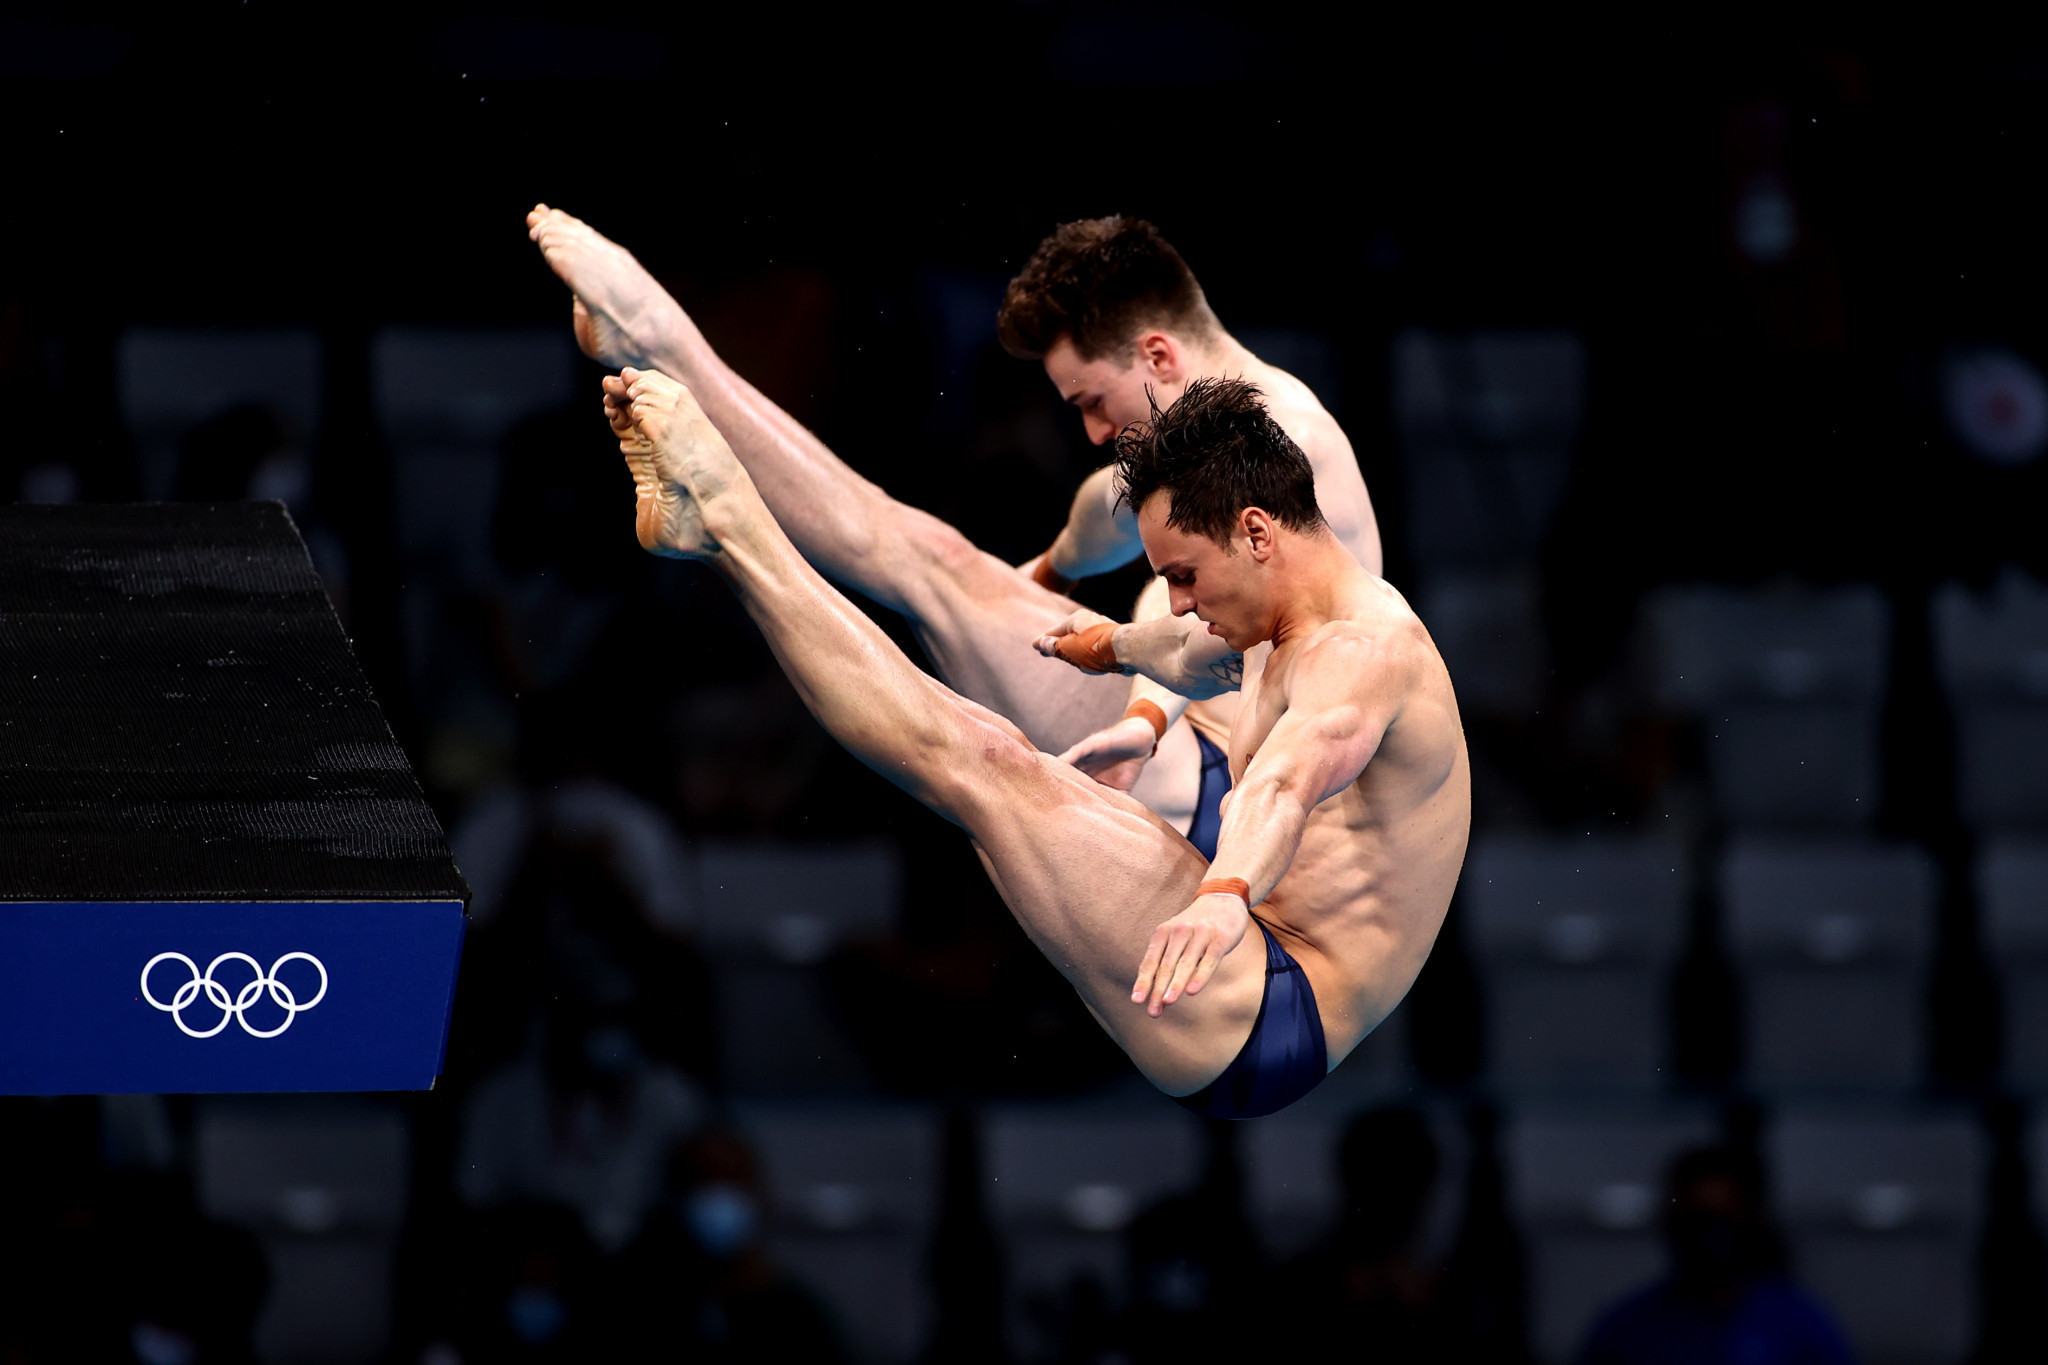 Also at Tokyo Aquatics Centre, Tom Daley and Matty Lee of Britain took advantage of a rare Chinese error to win men's 10m platform synchronised gold ©Getty Images